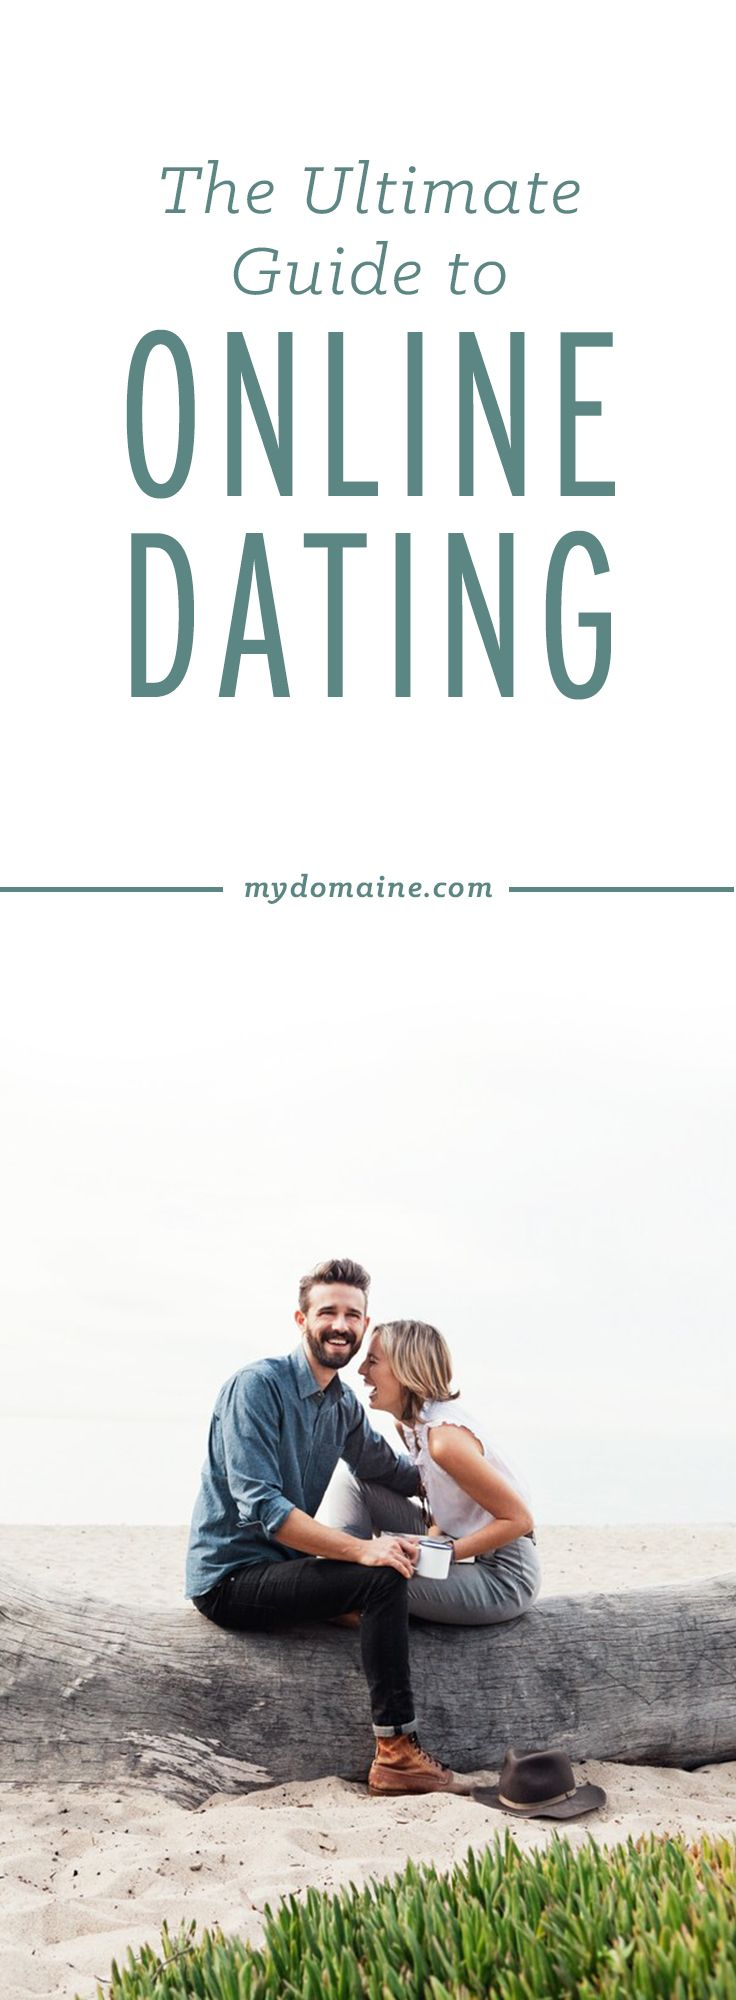 Dating Advice - Best Dating Tips and Advice for Women